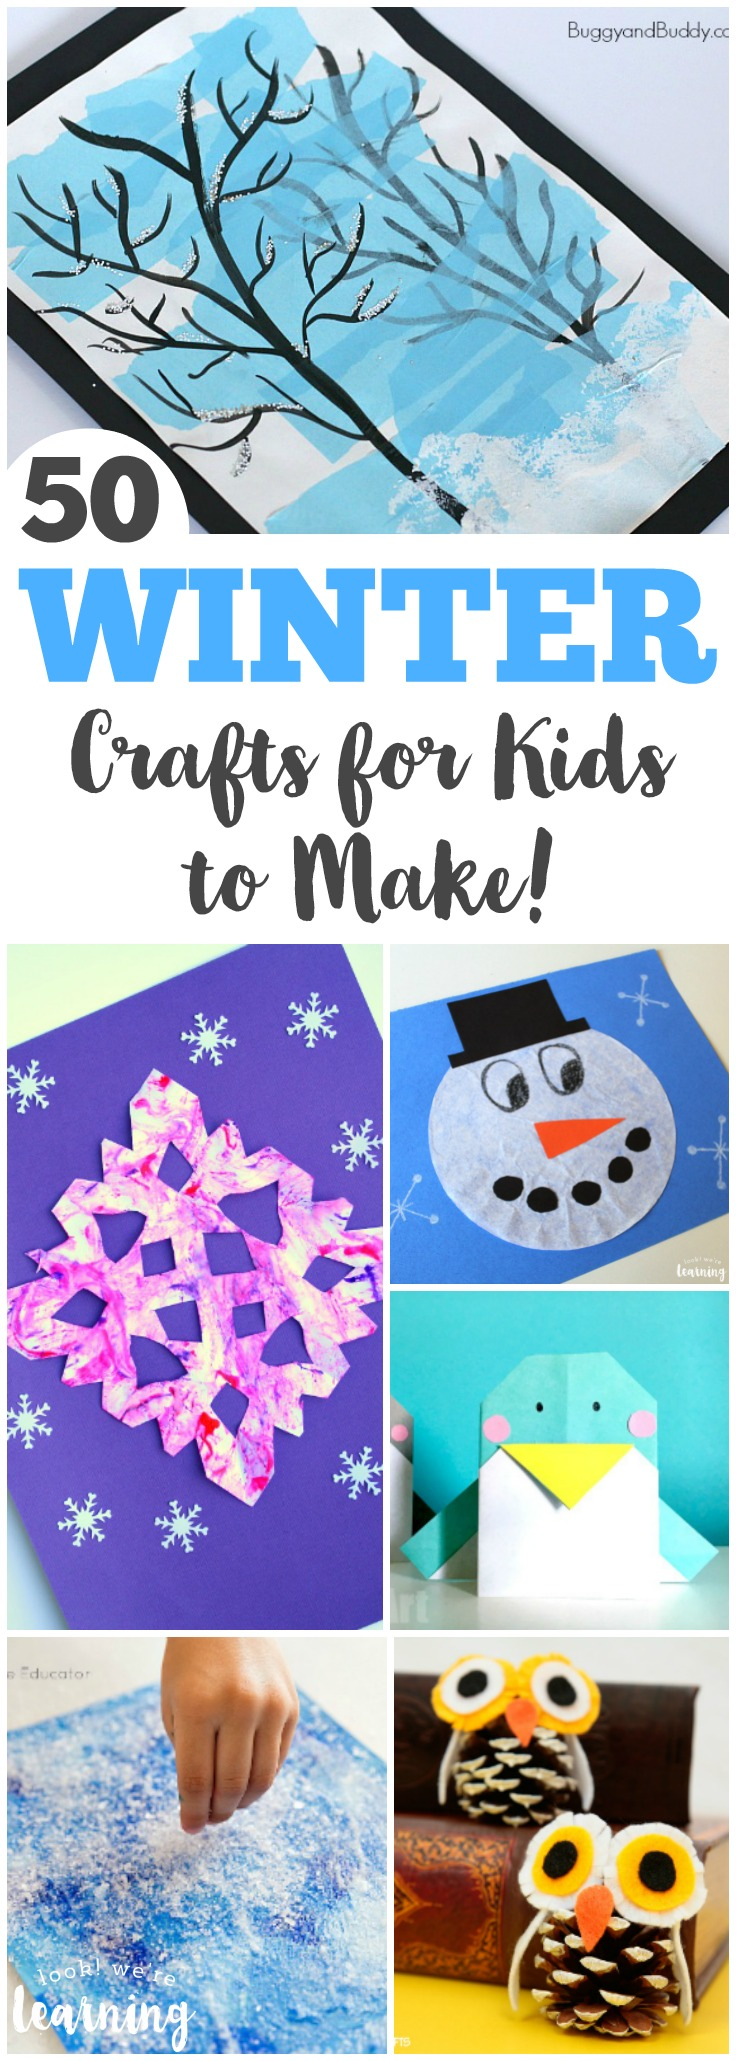 Winter is the perfect season for crafting! Share some of these fun and easy winter crafts for kids with your little ones!